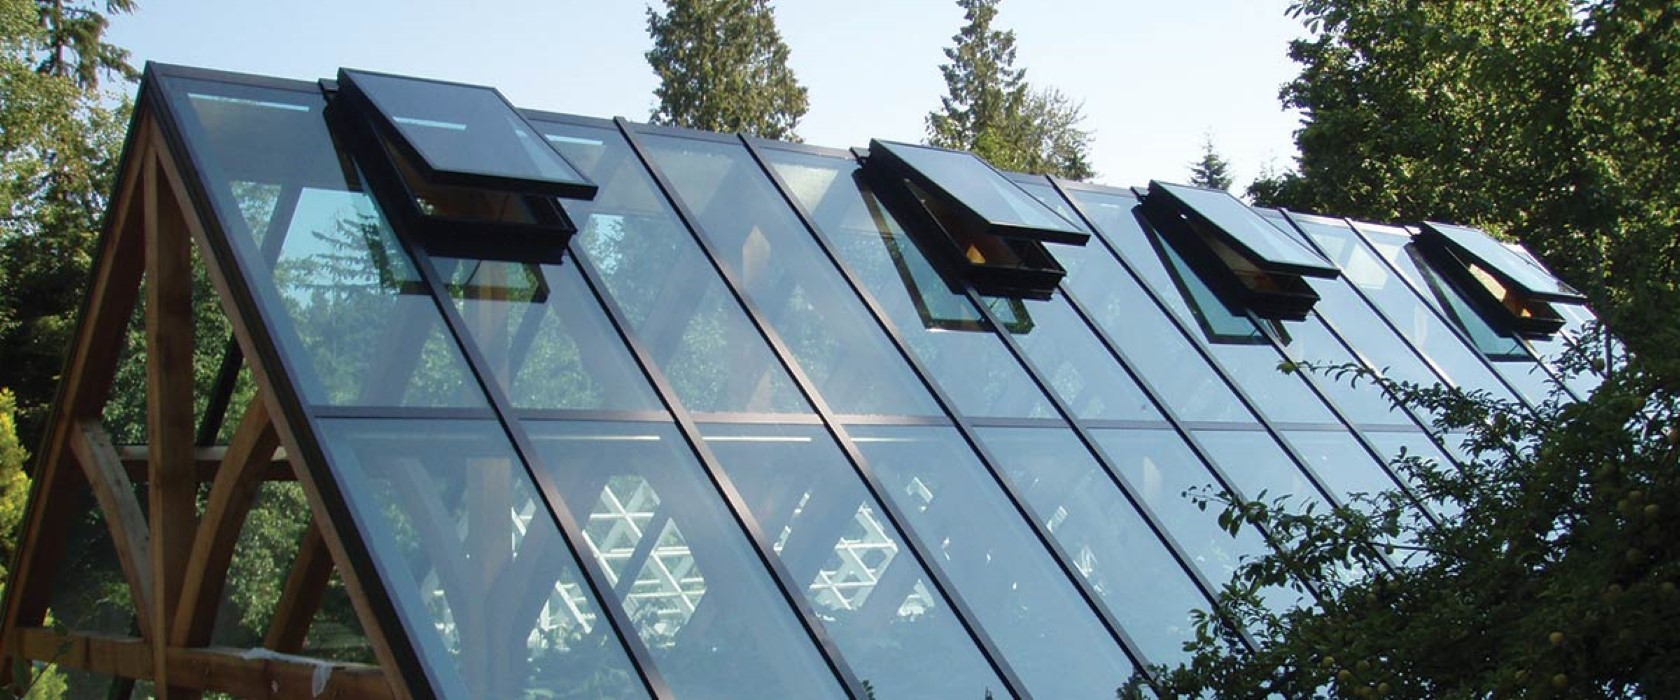 Roof Glazing Systems : Glazing roof r image